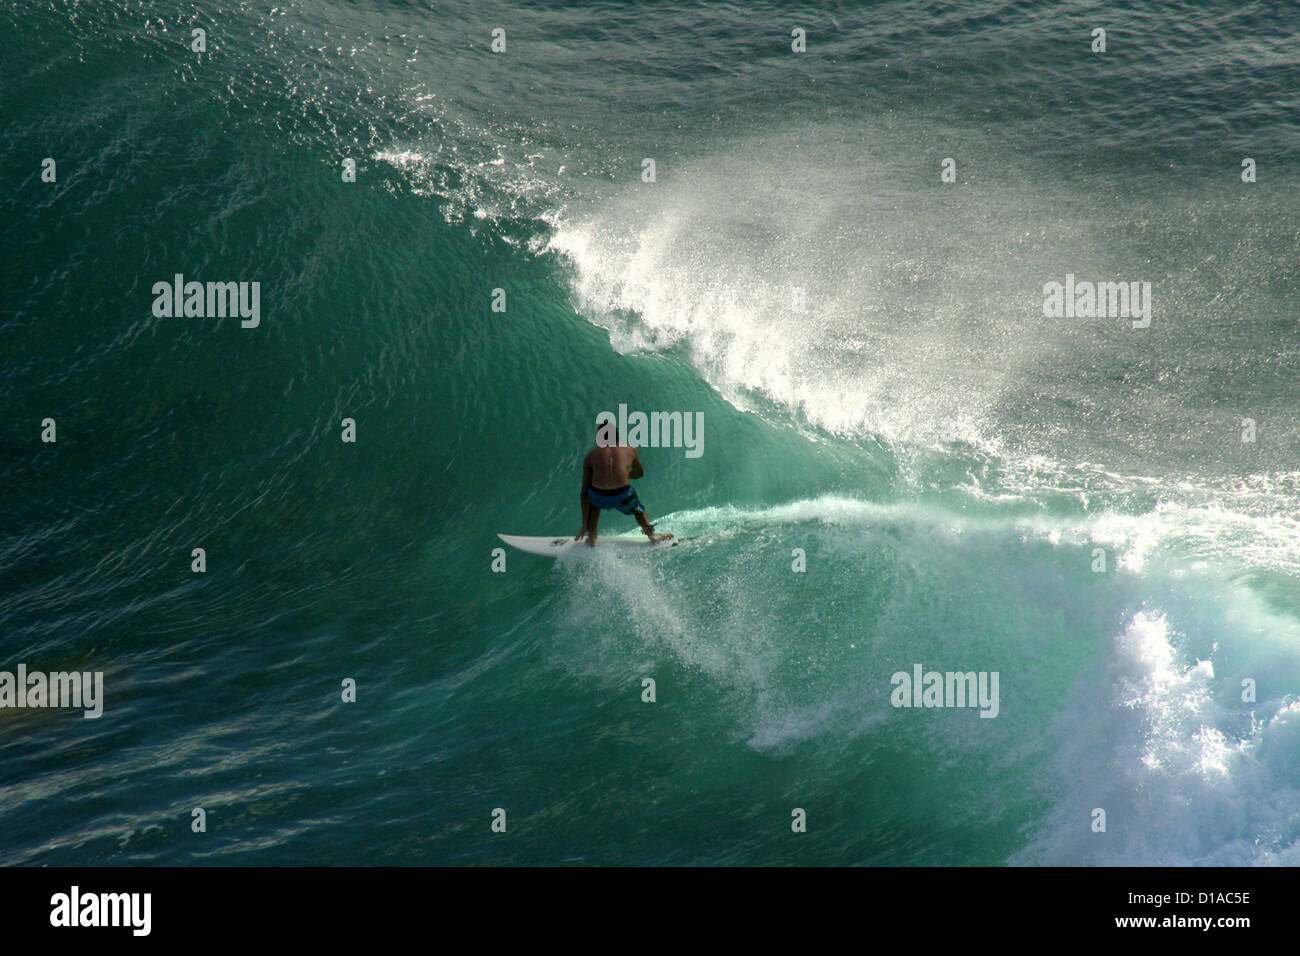 Surfer riding big wave with ocean spray, Maui, Hawaii Stock Photo